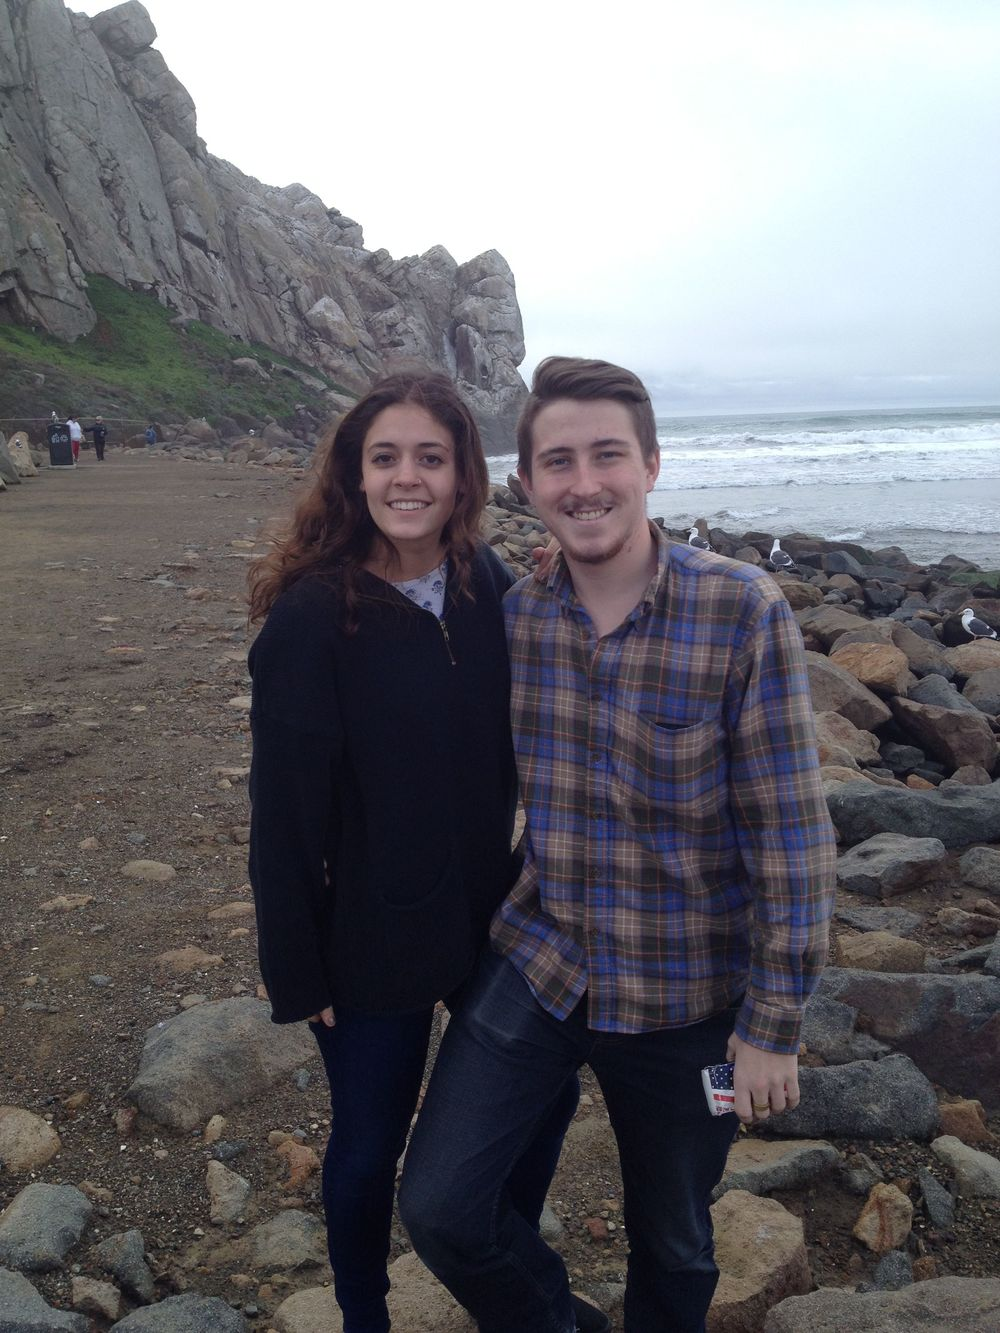 Siena and Cooper at Morro Bay, California with the edge of Morro Rock in the background.